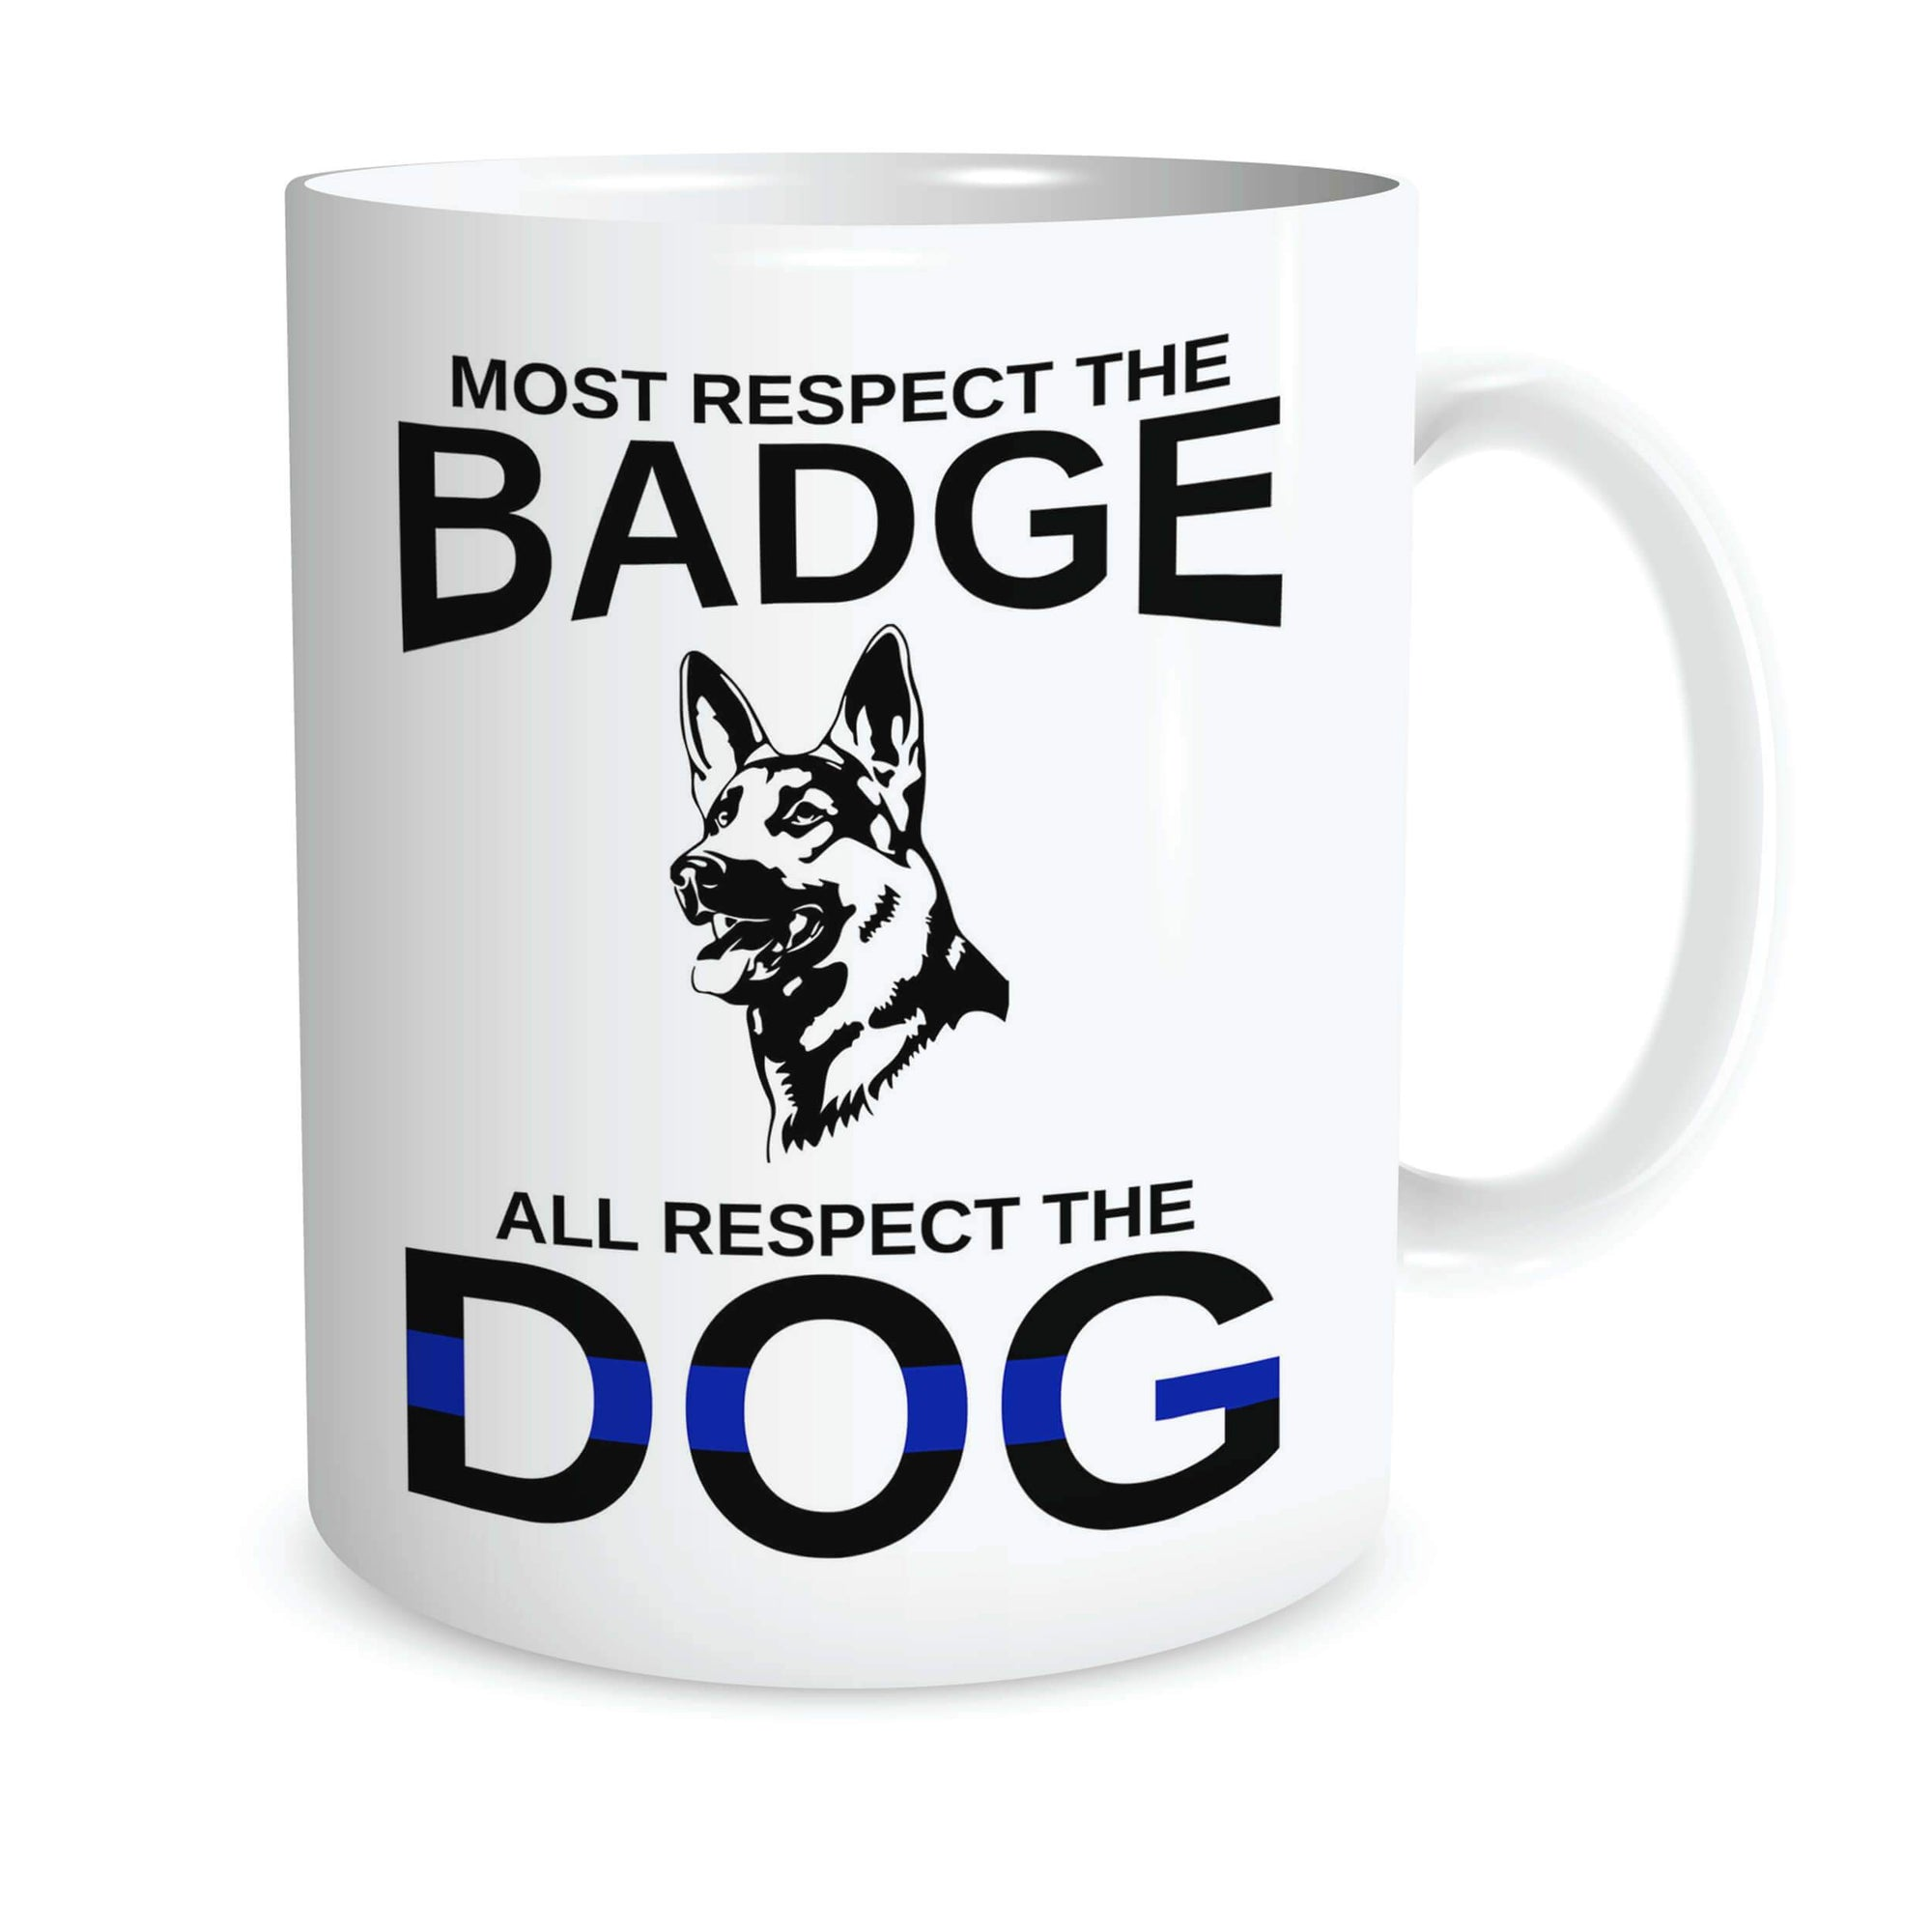 MOST RESPECT THE BADGE K9 COFFEE MUG